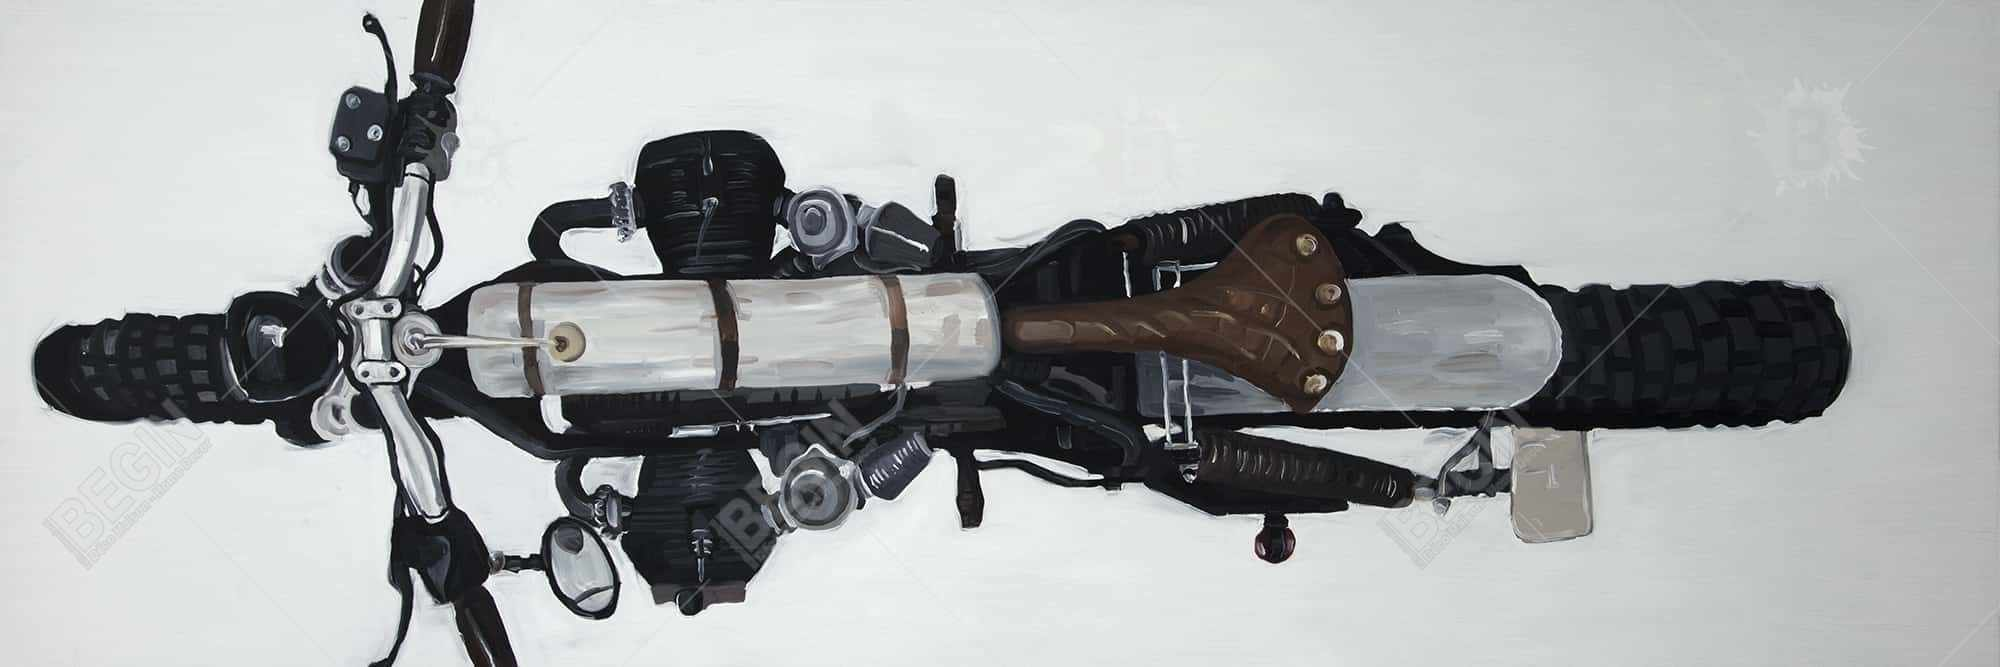 Overhead view of a motorcycle